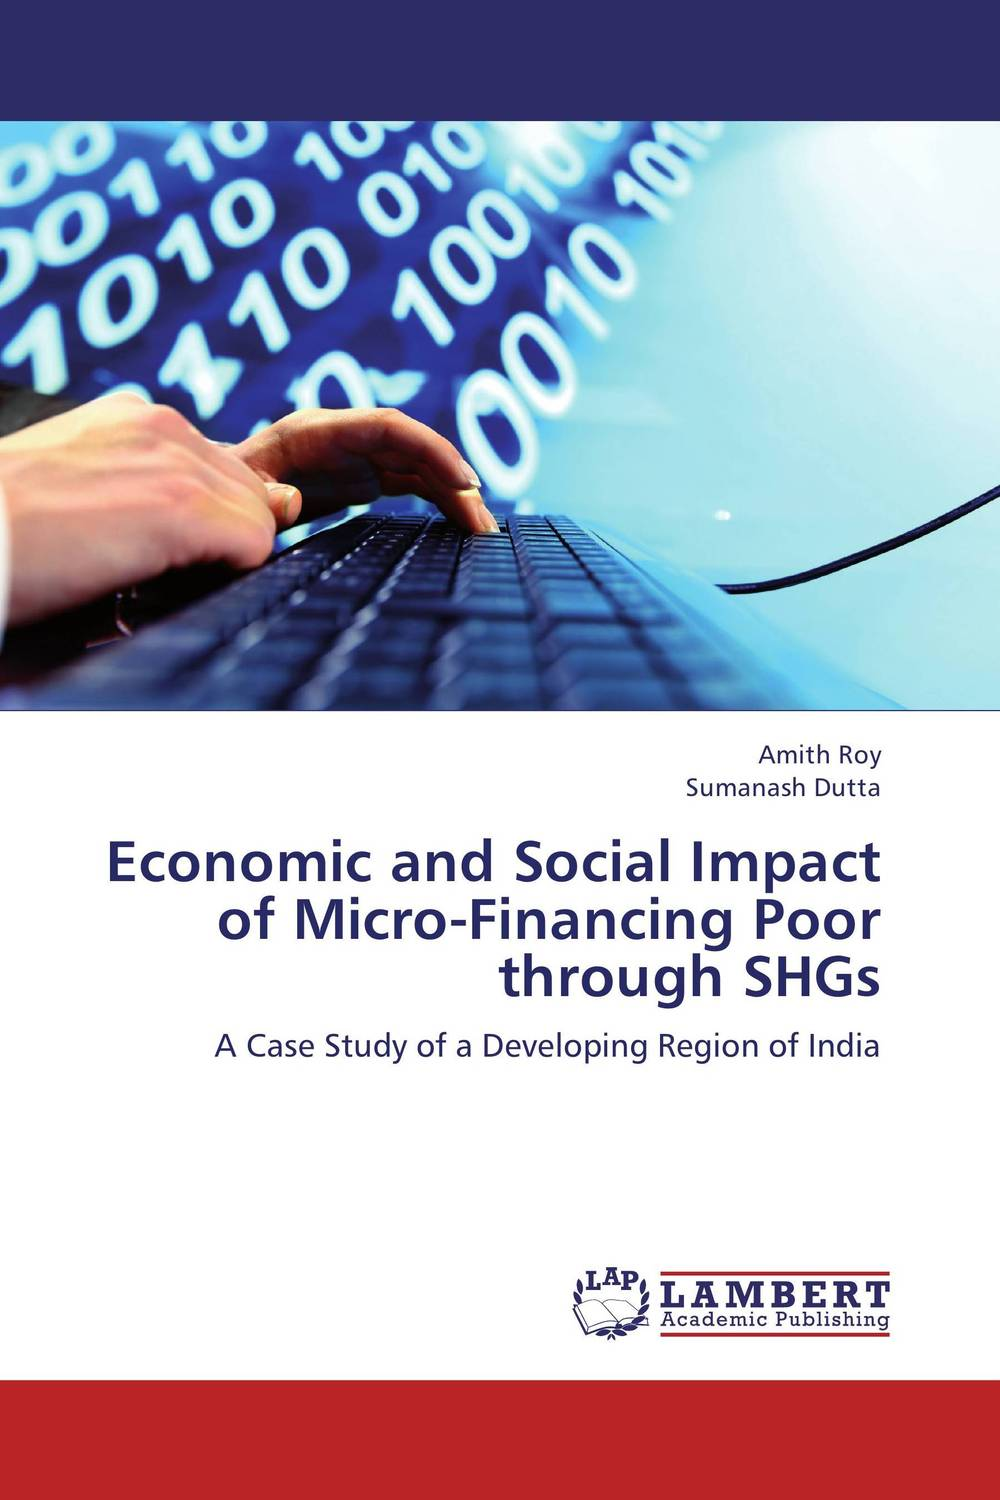 Economic and Social Impact of Micro-Financing Poor through SHGs abhaya kumar naik socio economic impact of industrialisation